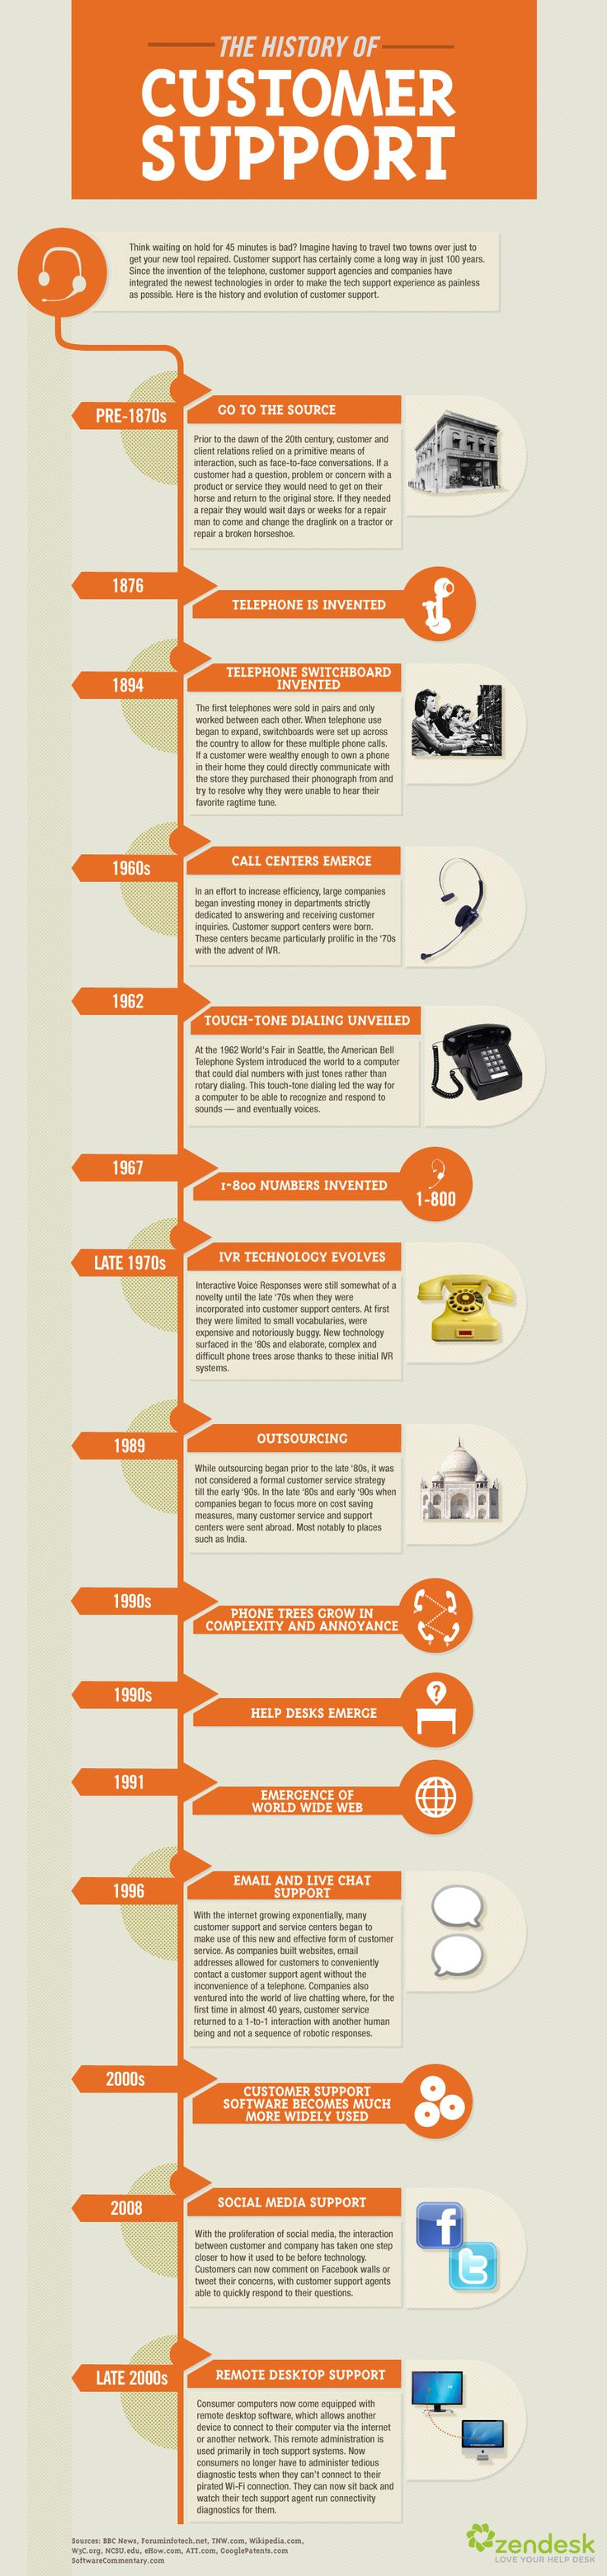 The history of customer support